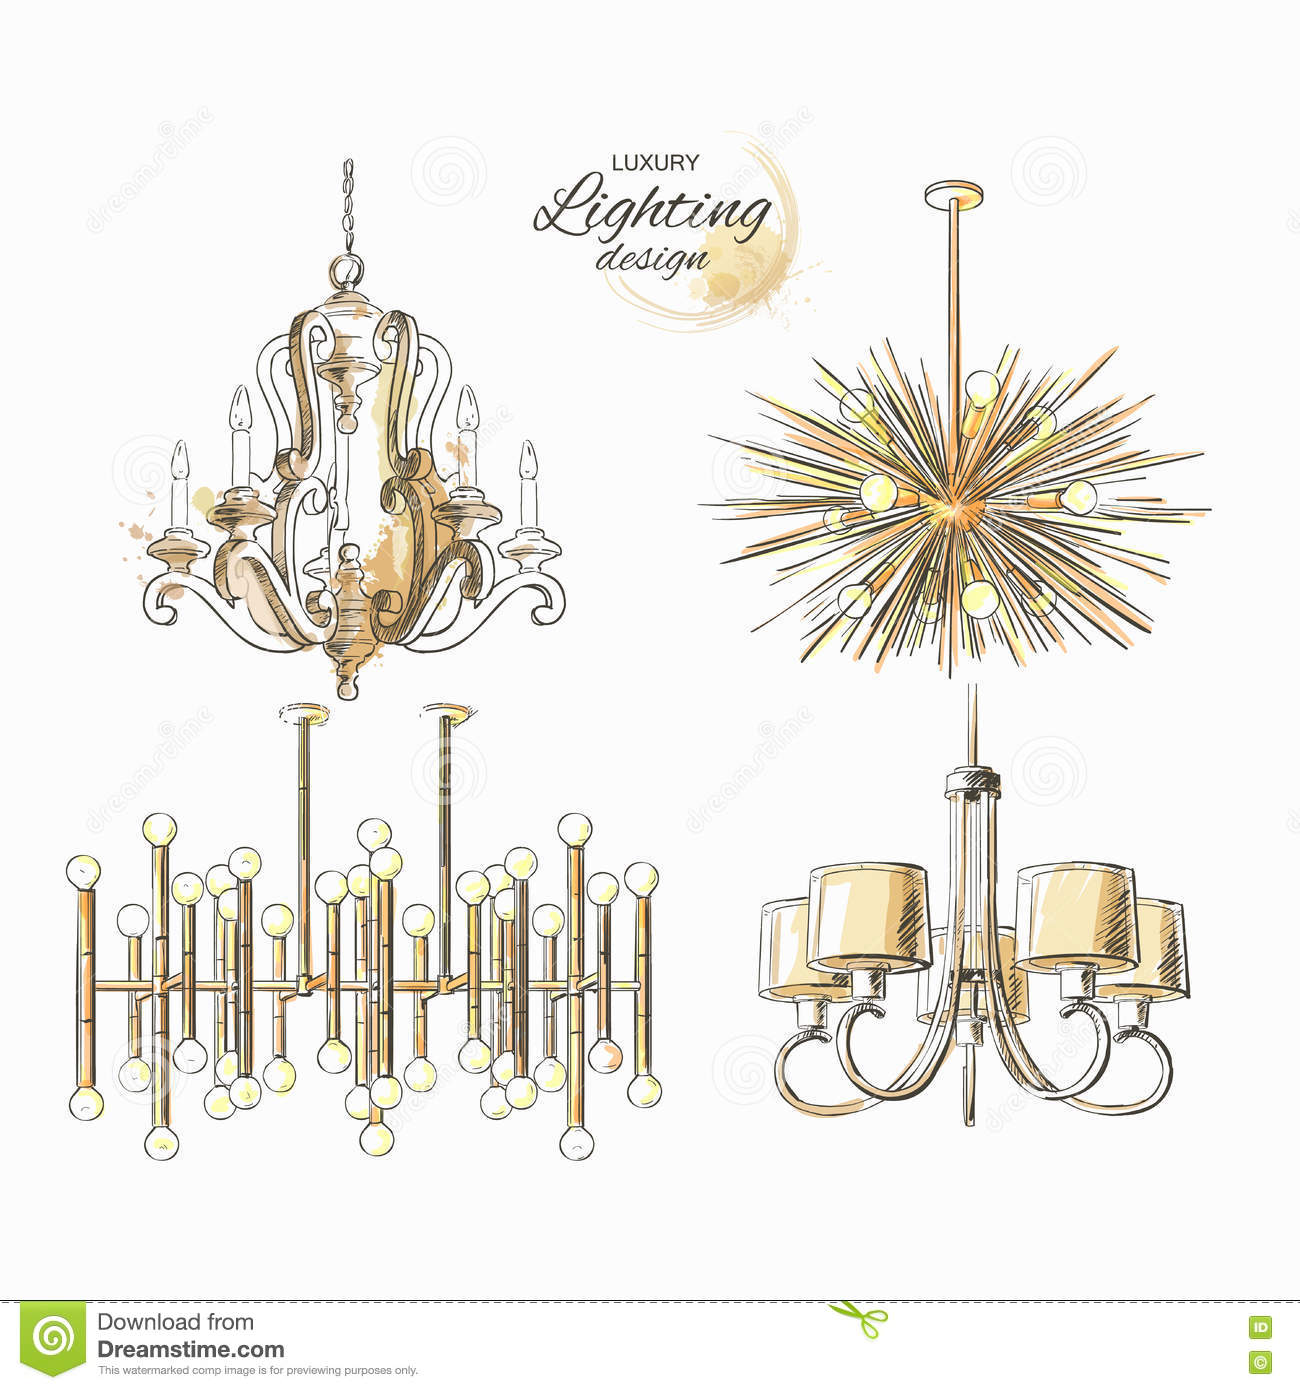 Chandelier Lamp Lighting Decor Stock Vector - Illustration of ...